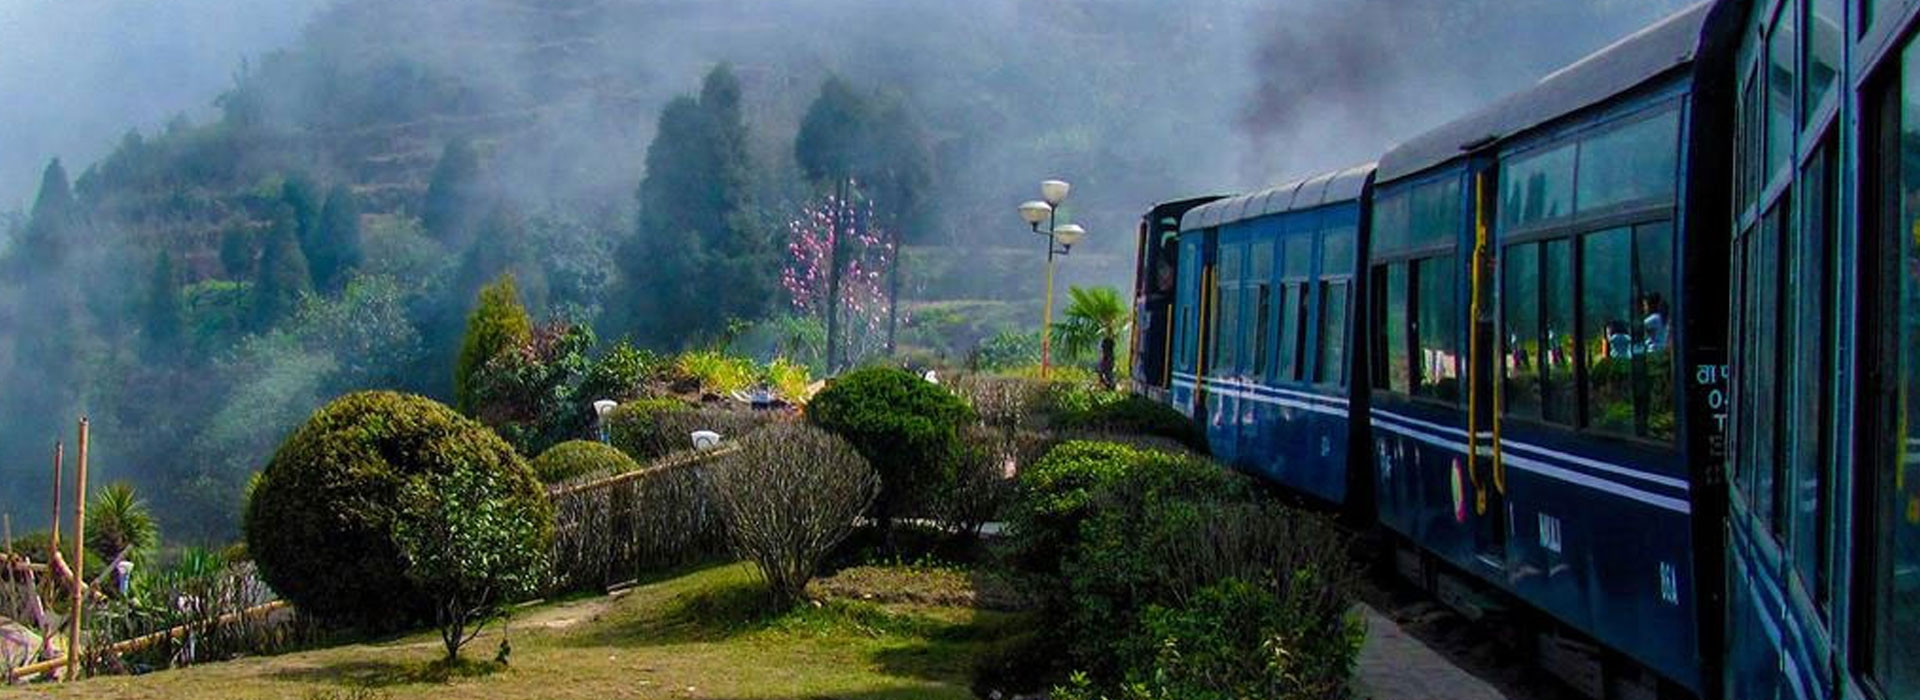 https://rareindia.com/upload/collections/train-tours.jpg